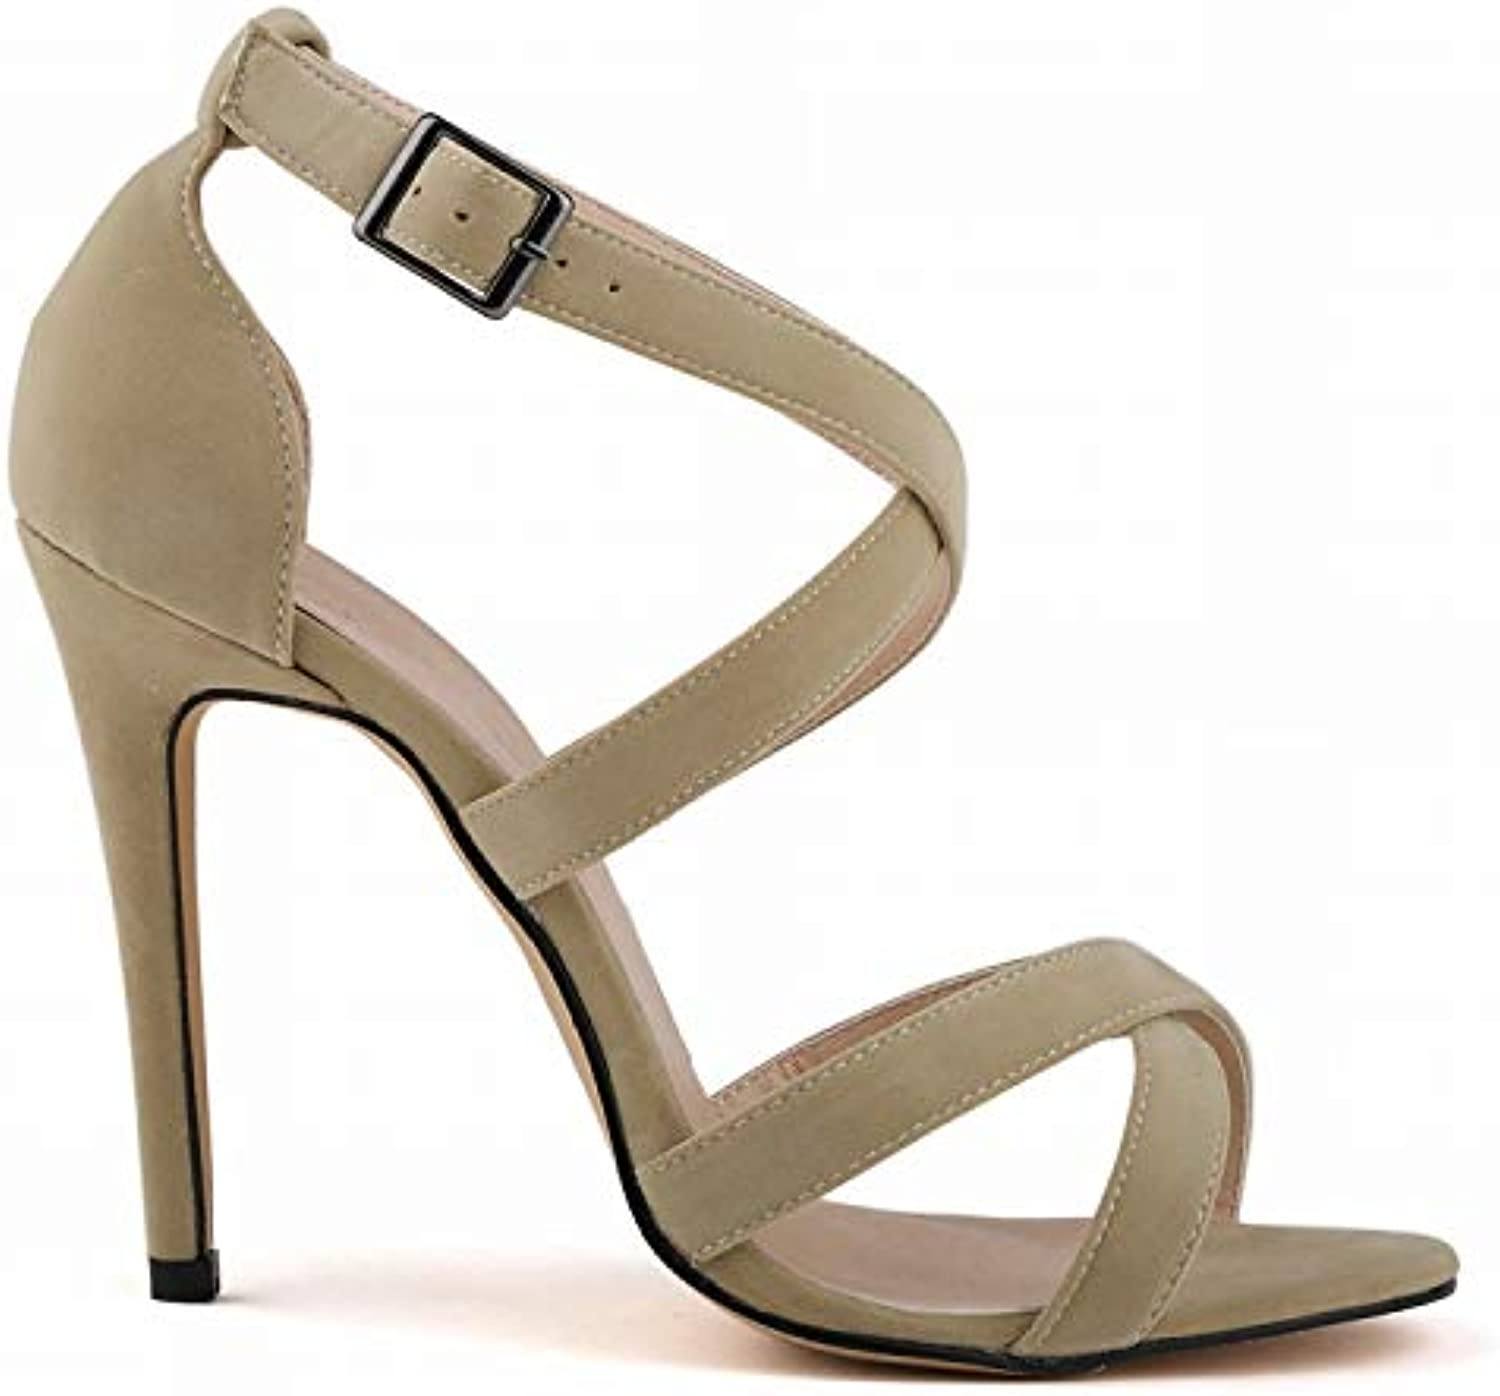 Women 11CM Stiletto Sandals Cross Strappy High Heels Open Toe Party Casual Dress shoes